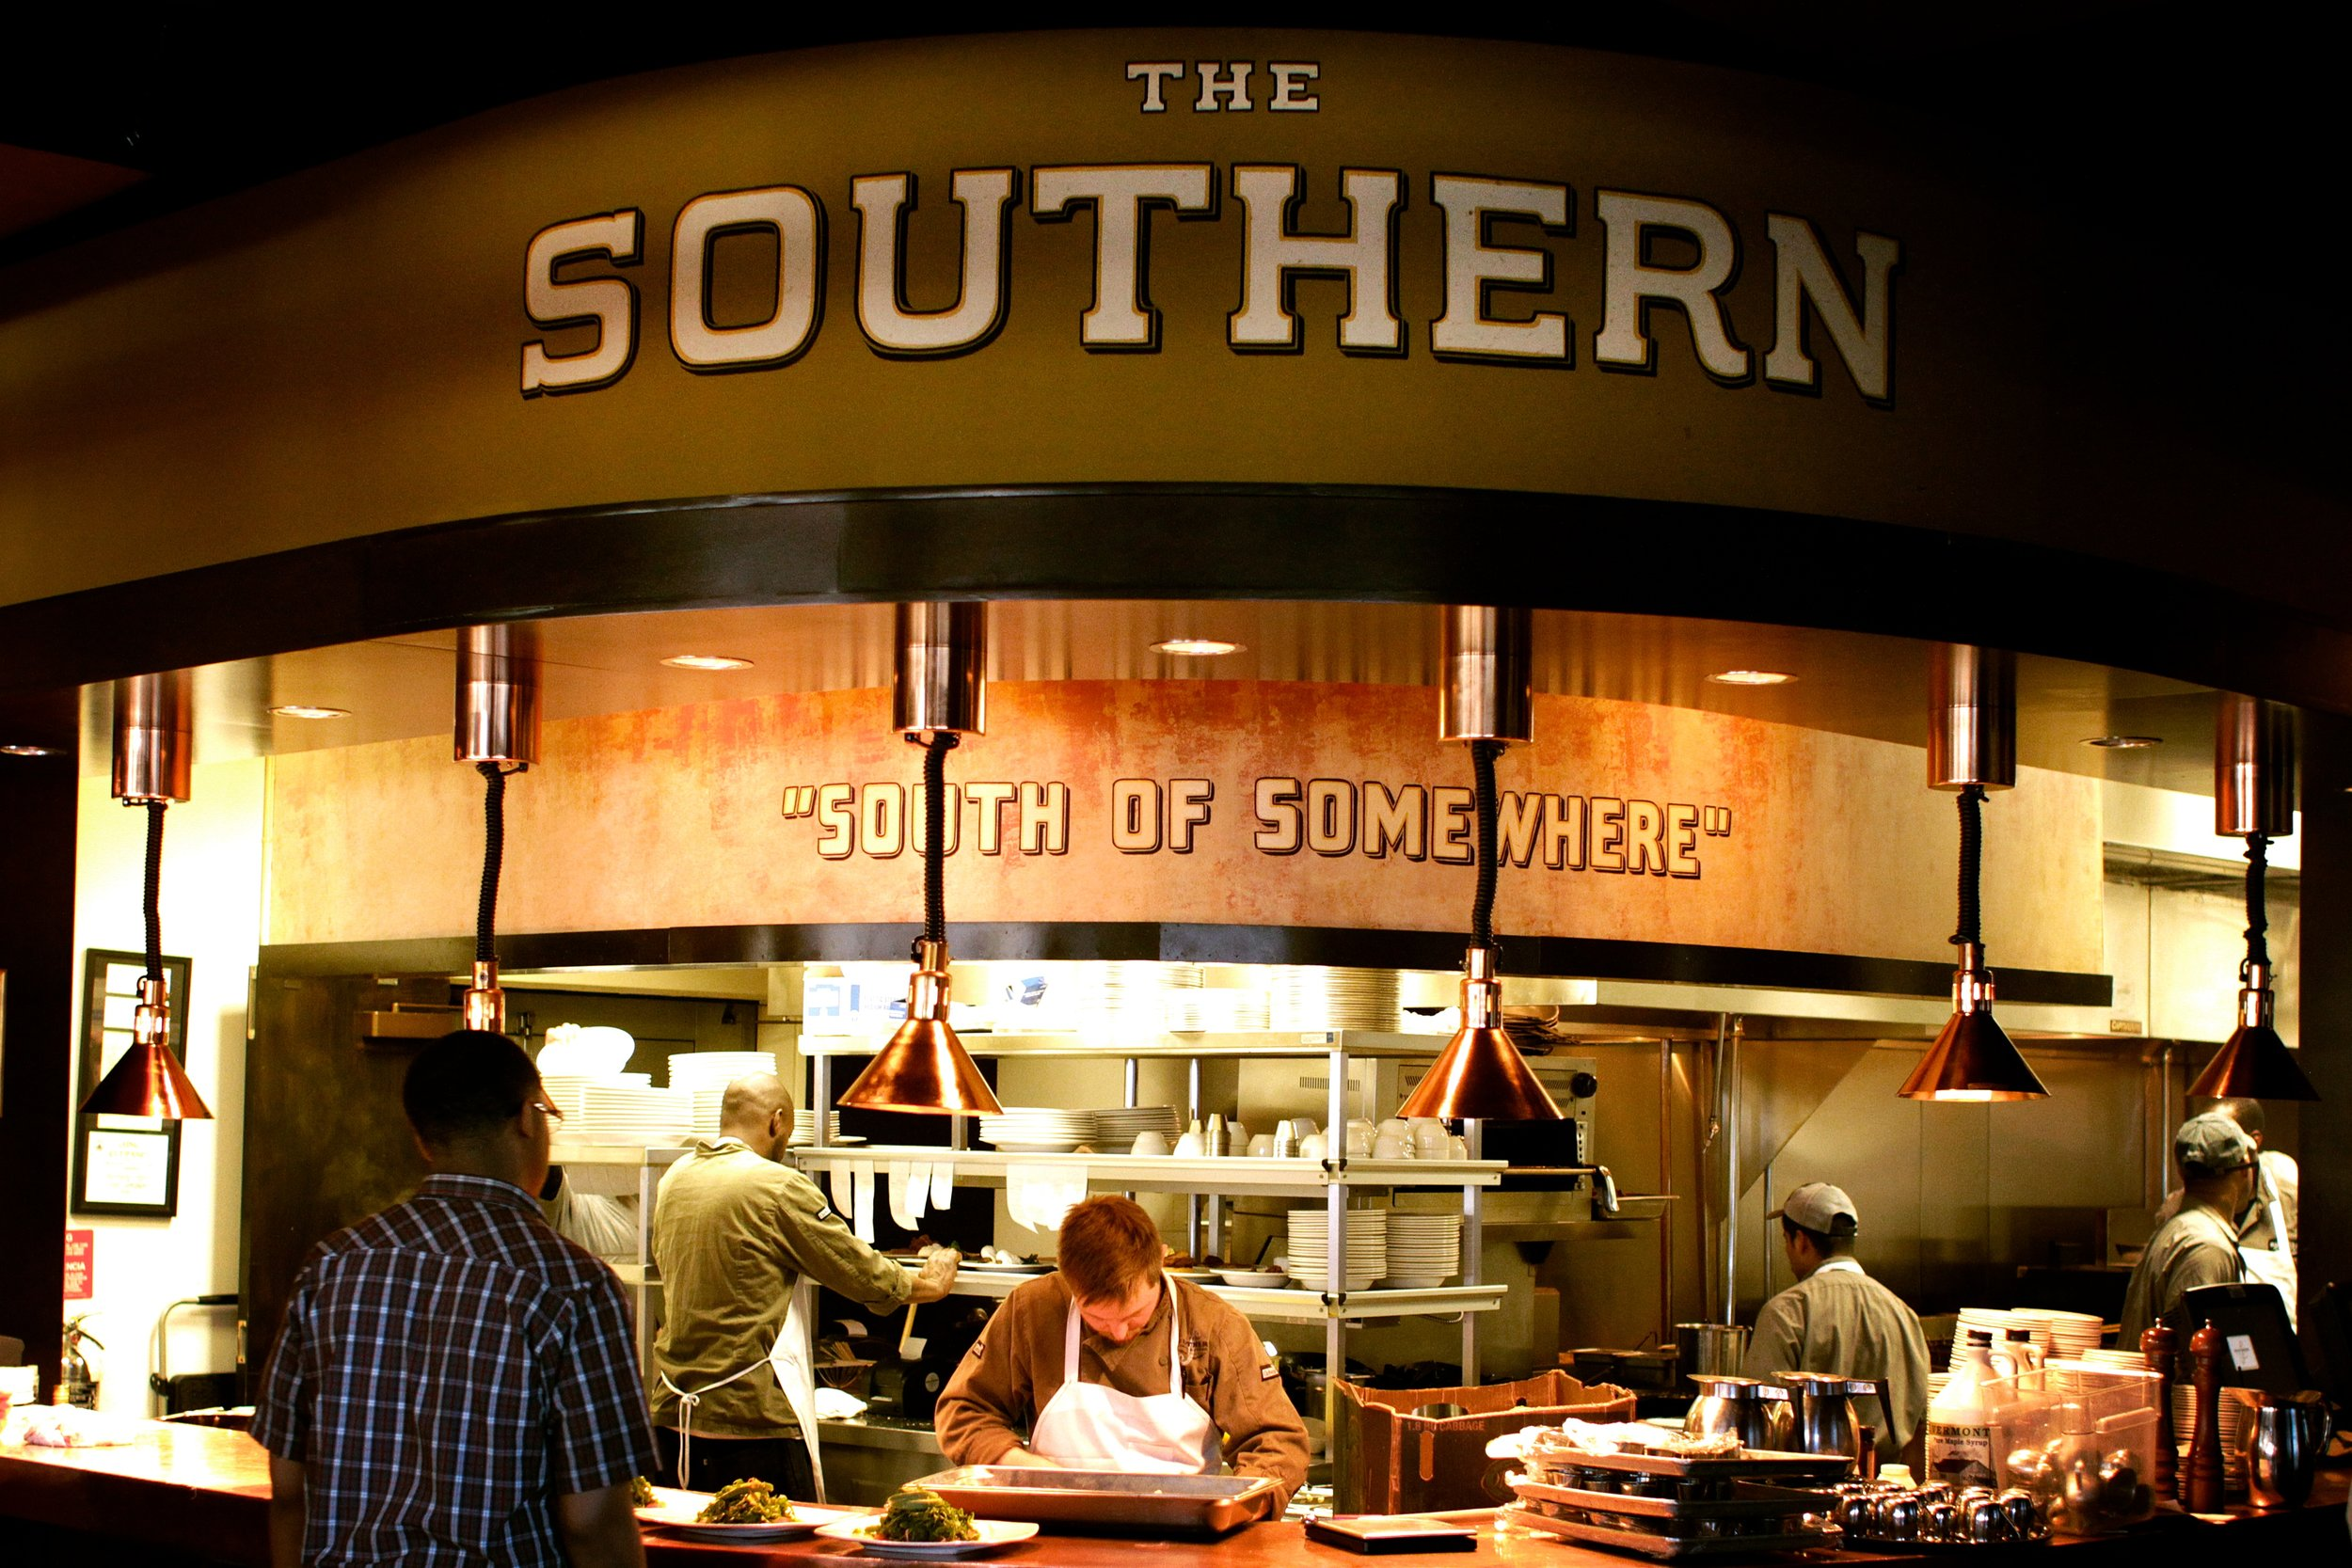 The Southern Steak & Oyster Bar